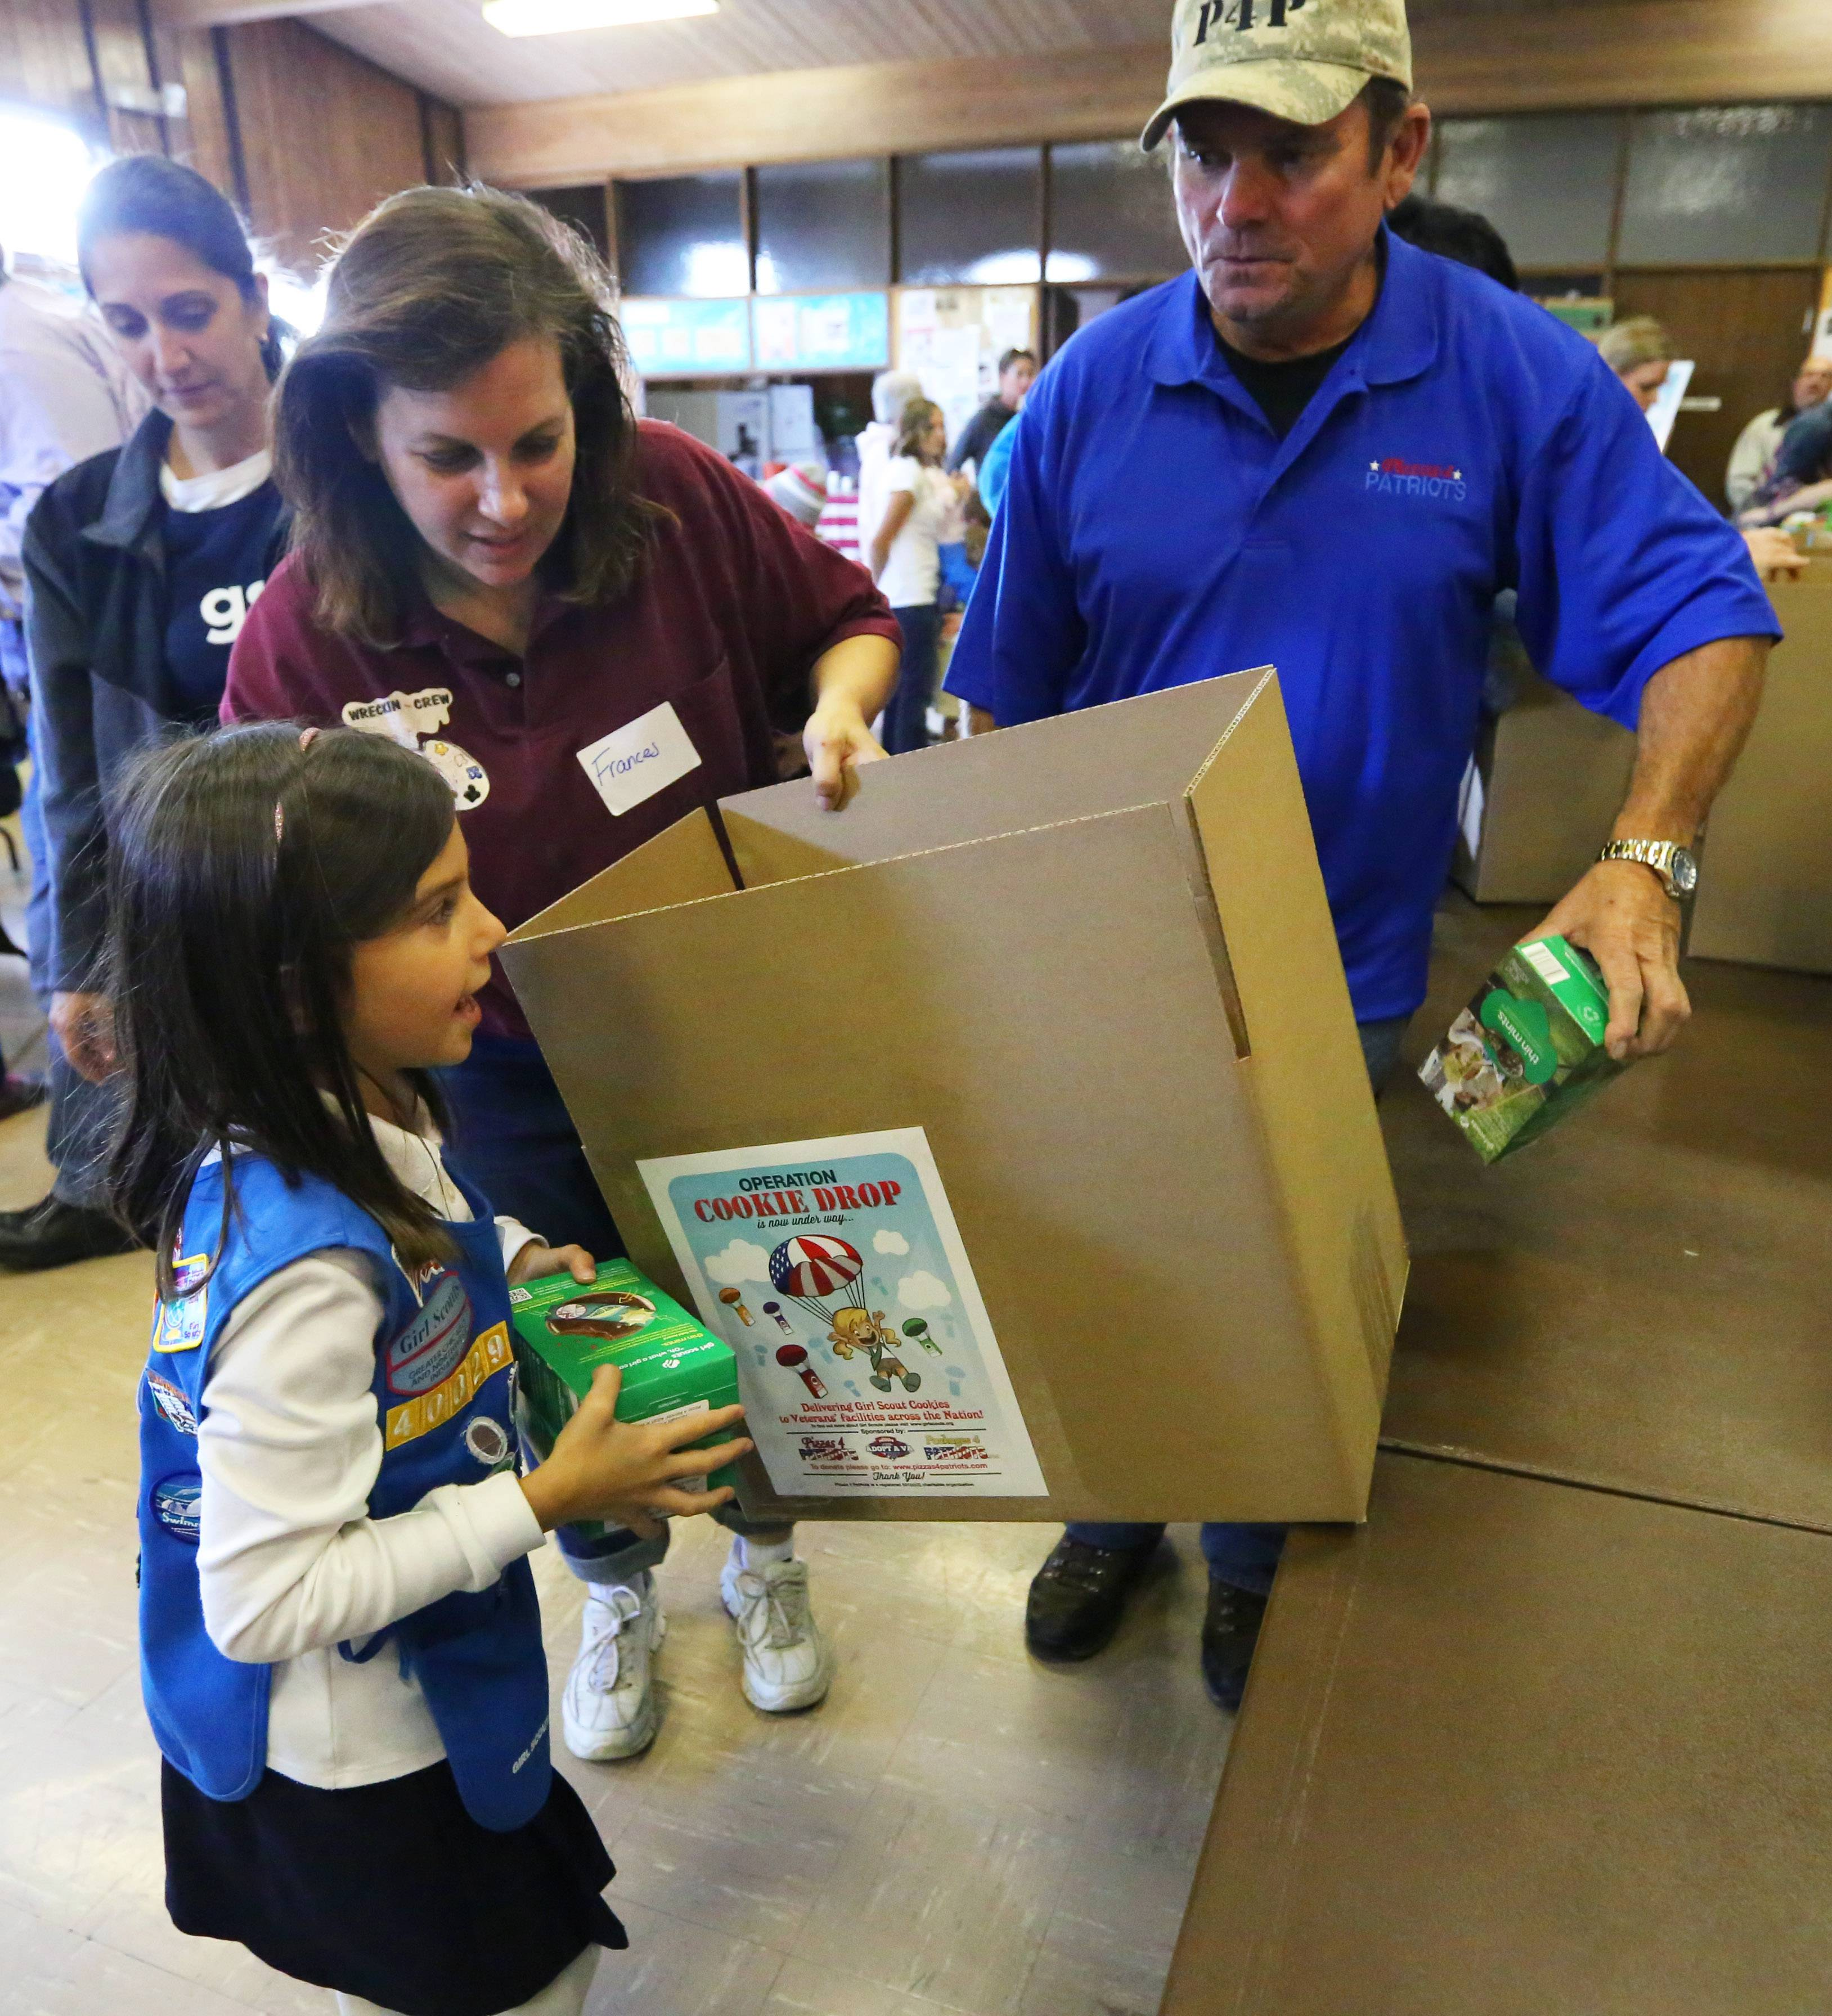 Learning how to pack 40 boxes of cookies into one shipping box, Immacolata Papucci, 7, of Elk Grove Village, follows the advice of Operation Cookie Drop leader Frances Lehning and Pizza 4 Patriots founder Mark Evans in 2014.